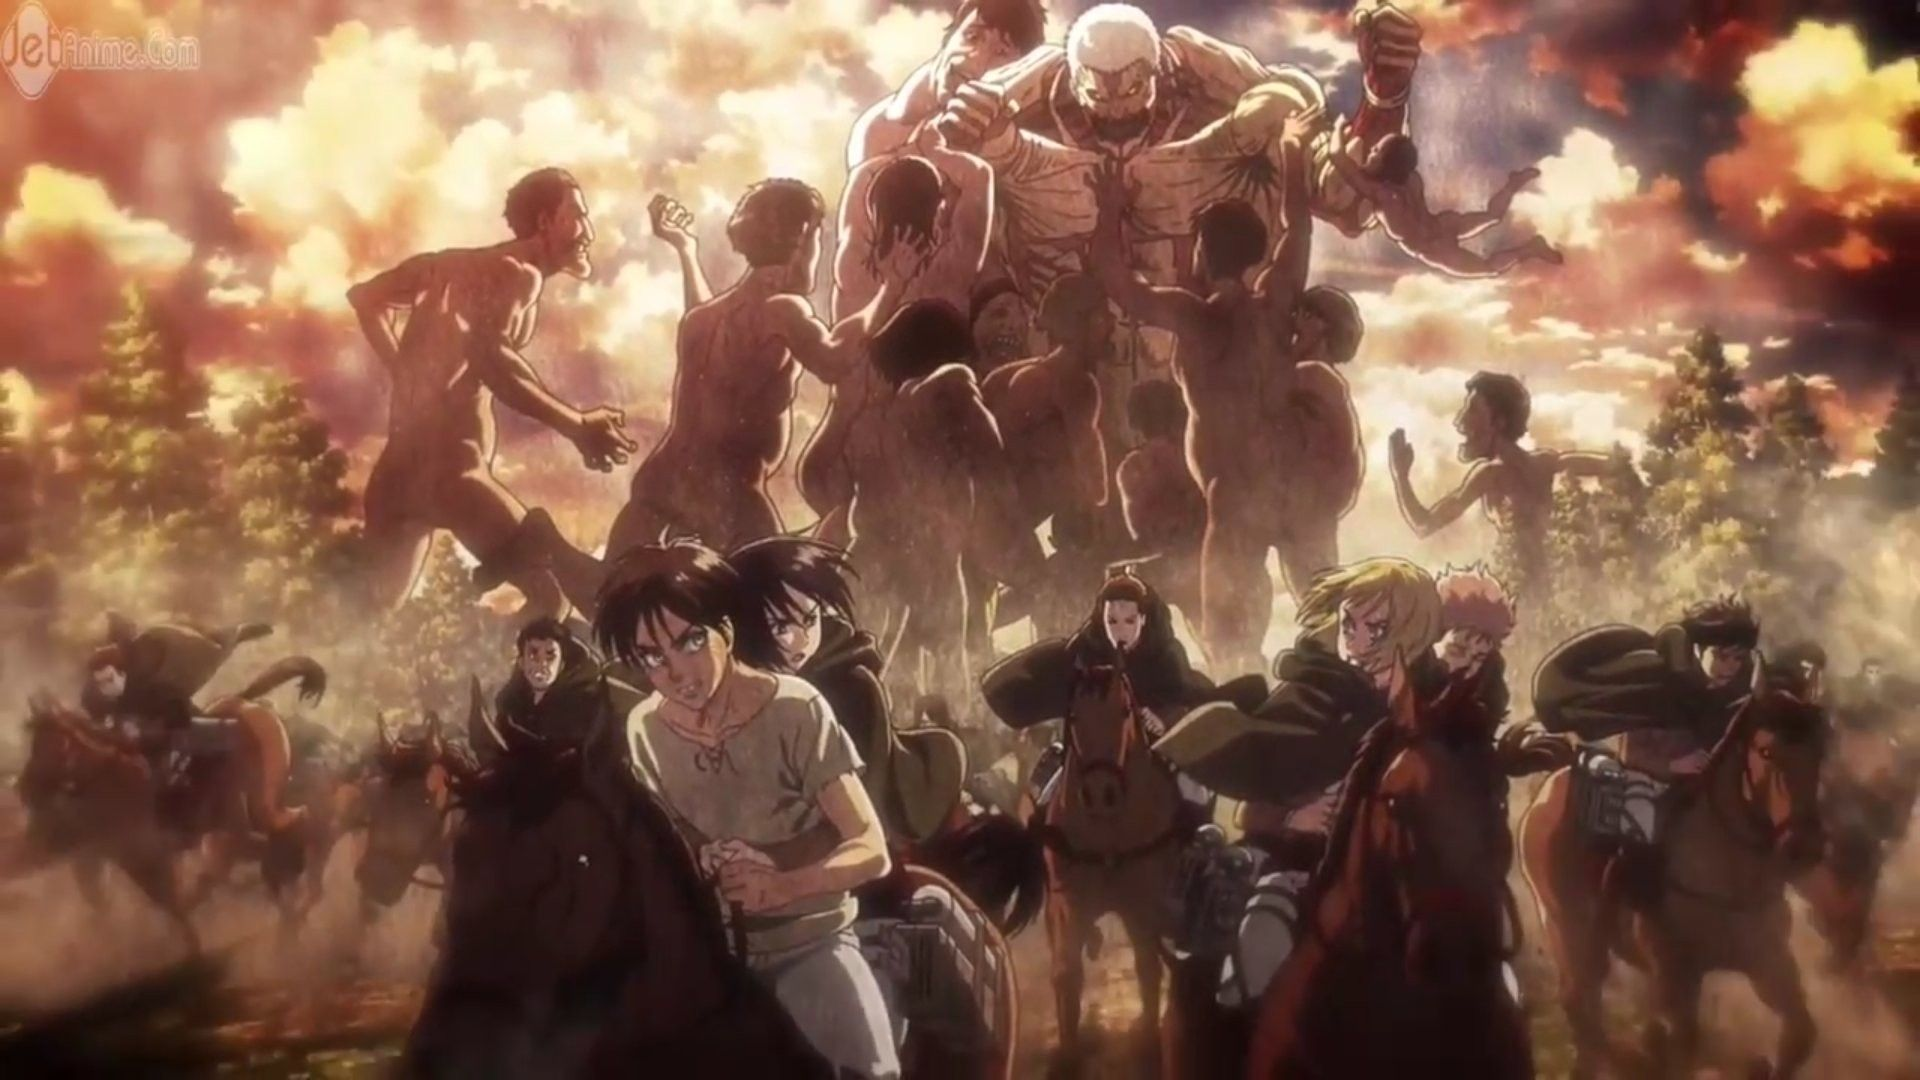 Pin by 🎼myungkath🎸 on Shingeki no Kyojin (With images